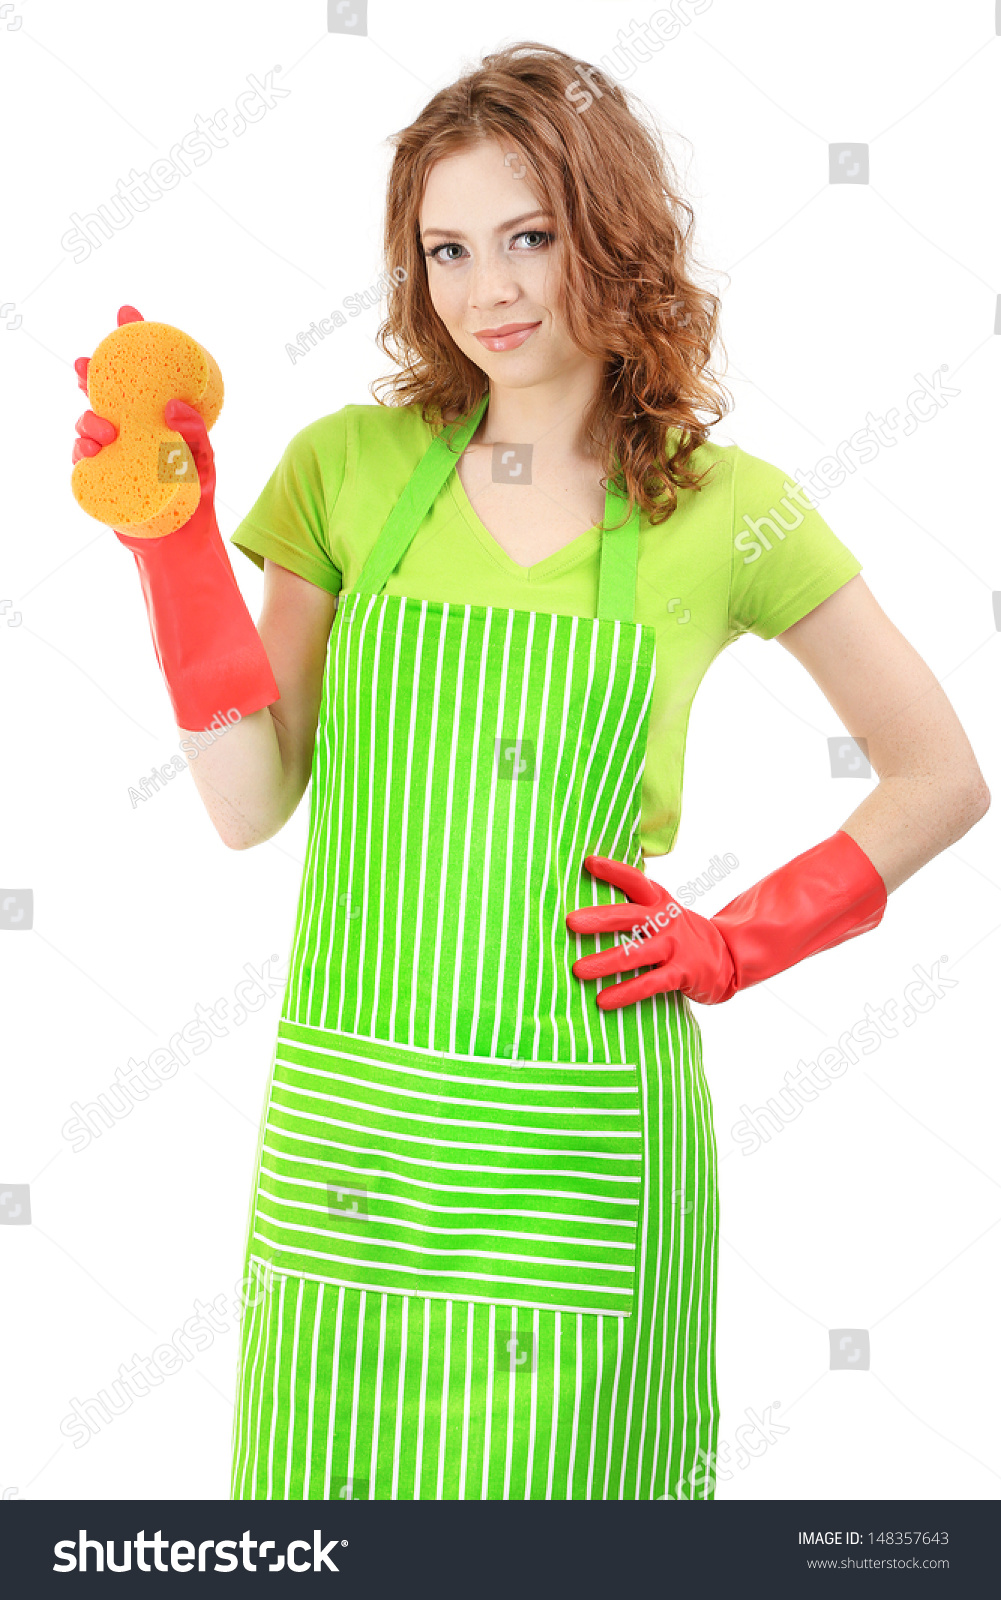 White apron green thumb - Young Woman Wearing Green Apron And Rubber Gloves With Sponge Isolated On White